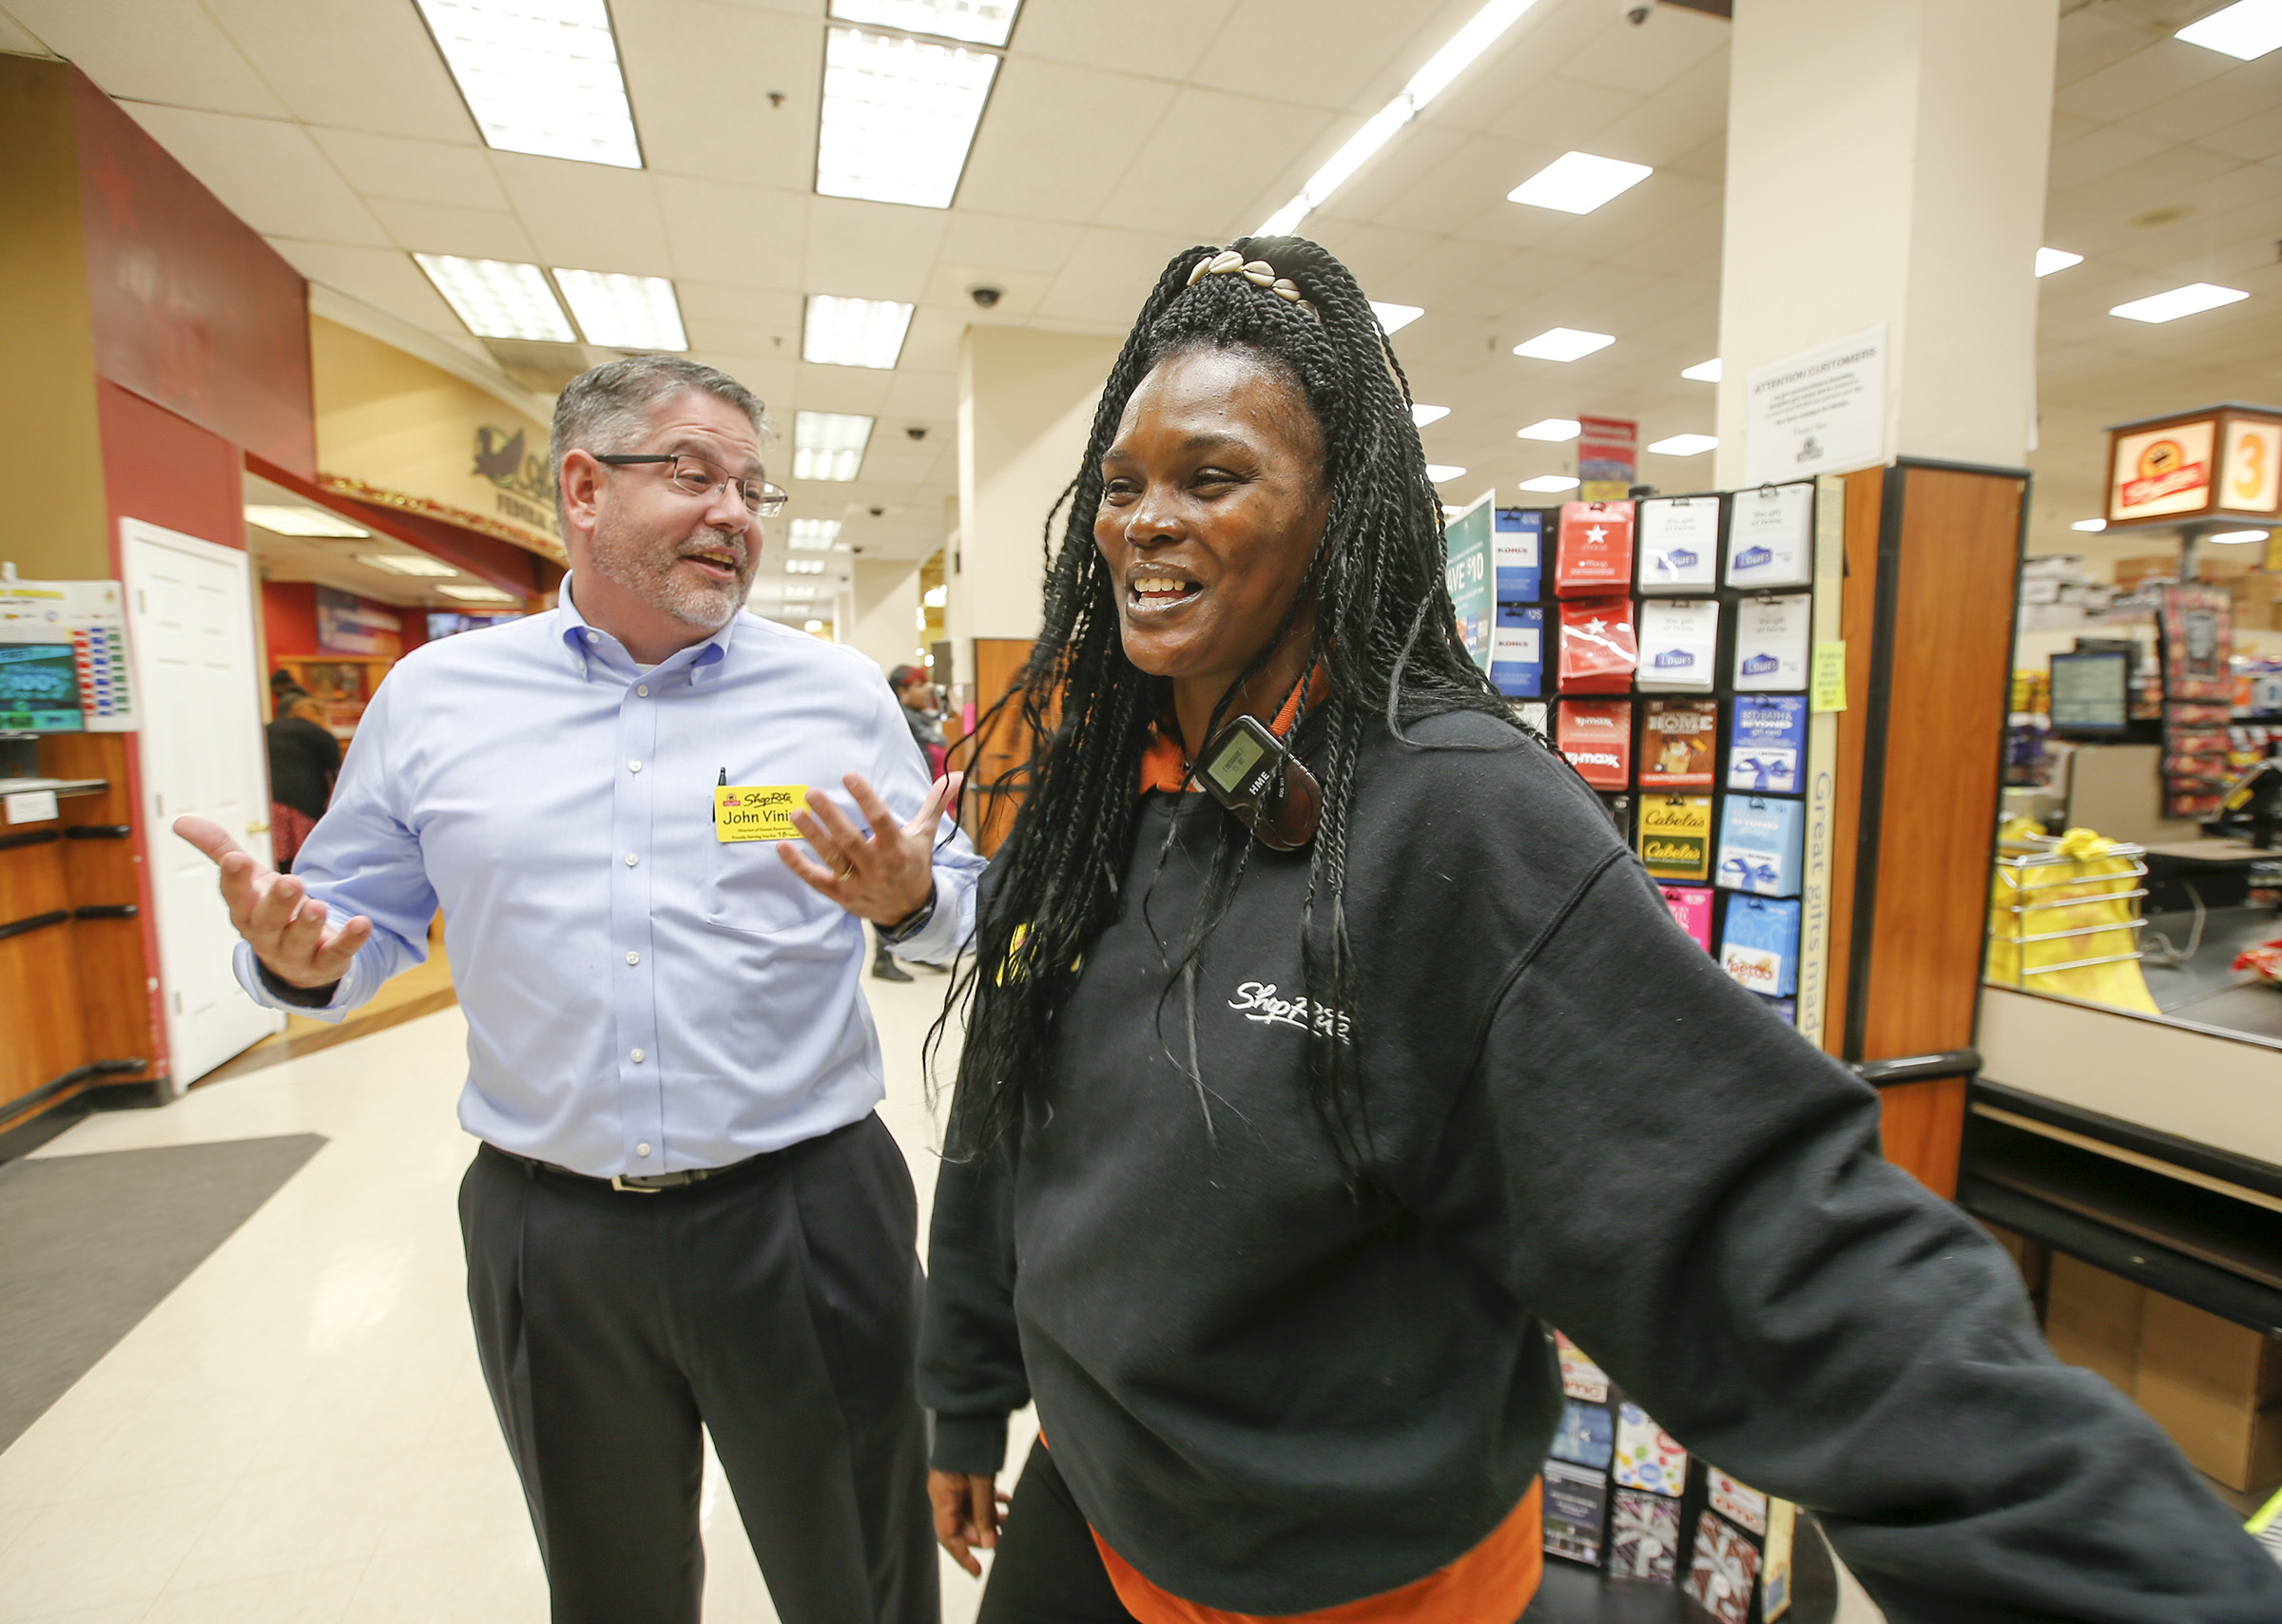 ShopRite employee LaShawna Bennett (right) shares a laugh last week with John Vining, director of human resources for Browns Super Stores Inc. at the Roxborough ShopRite. YONG KIM / Staff Photographer